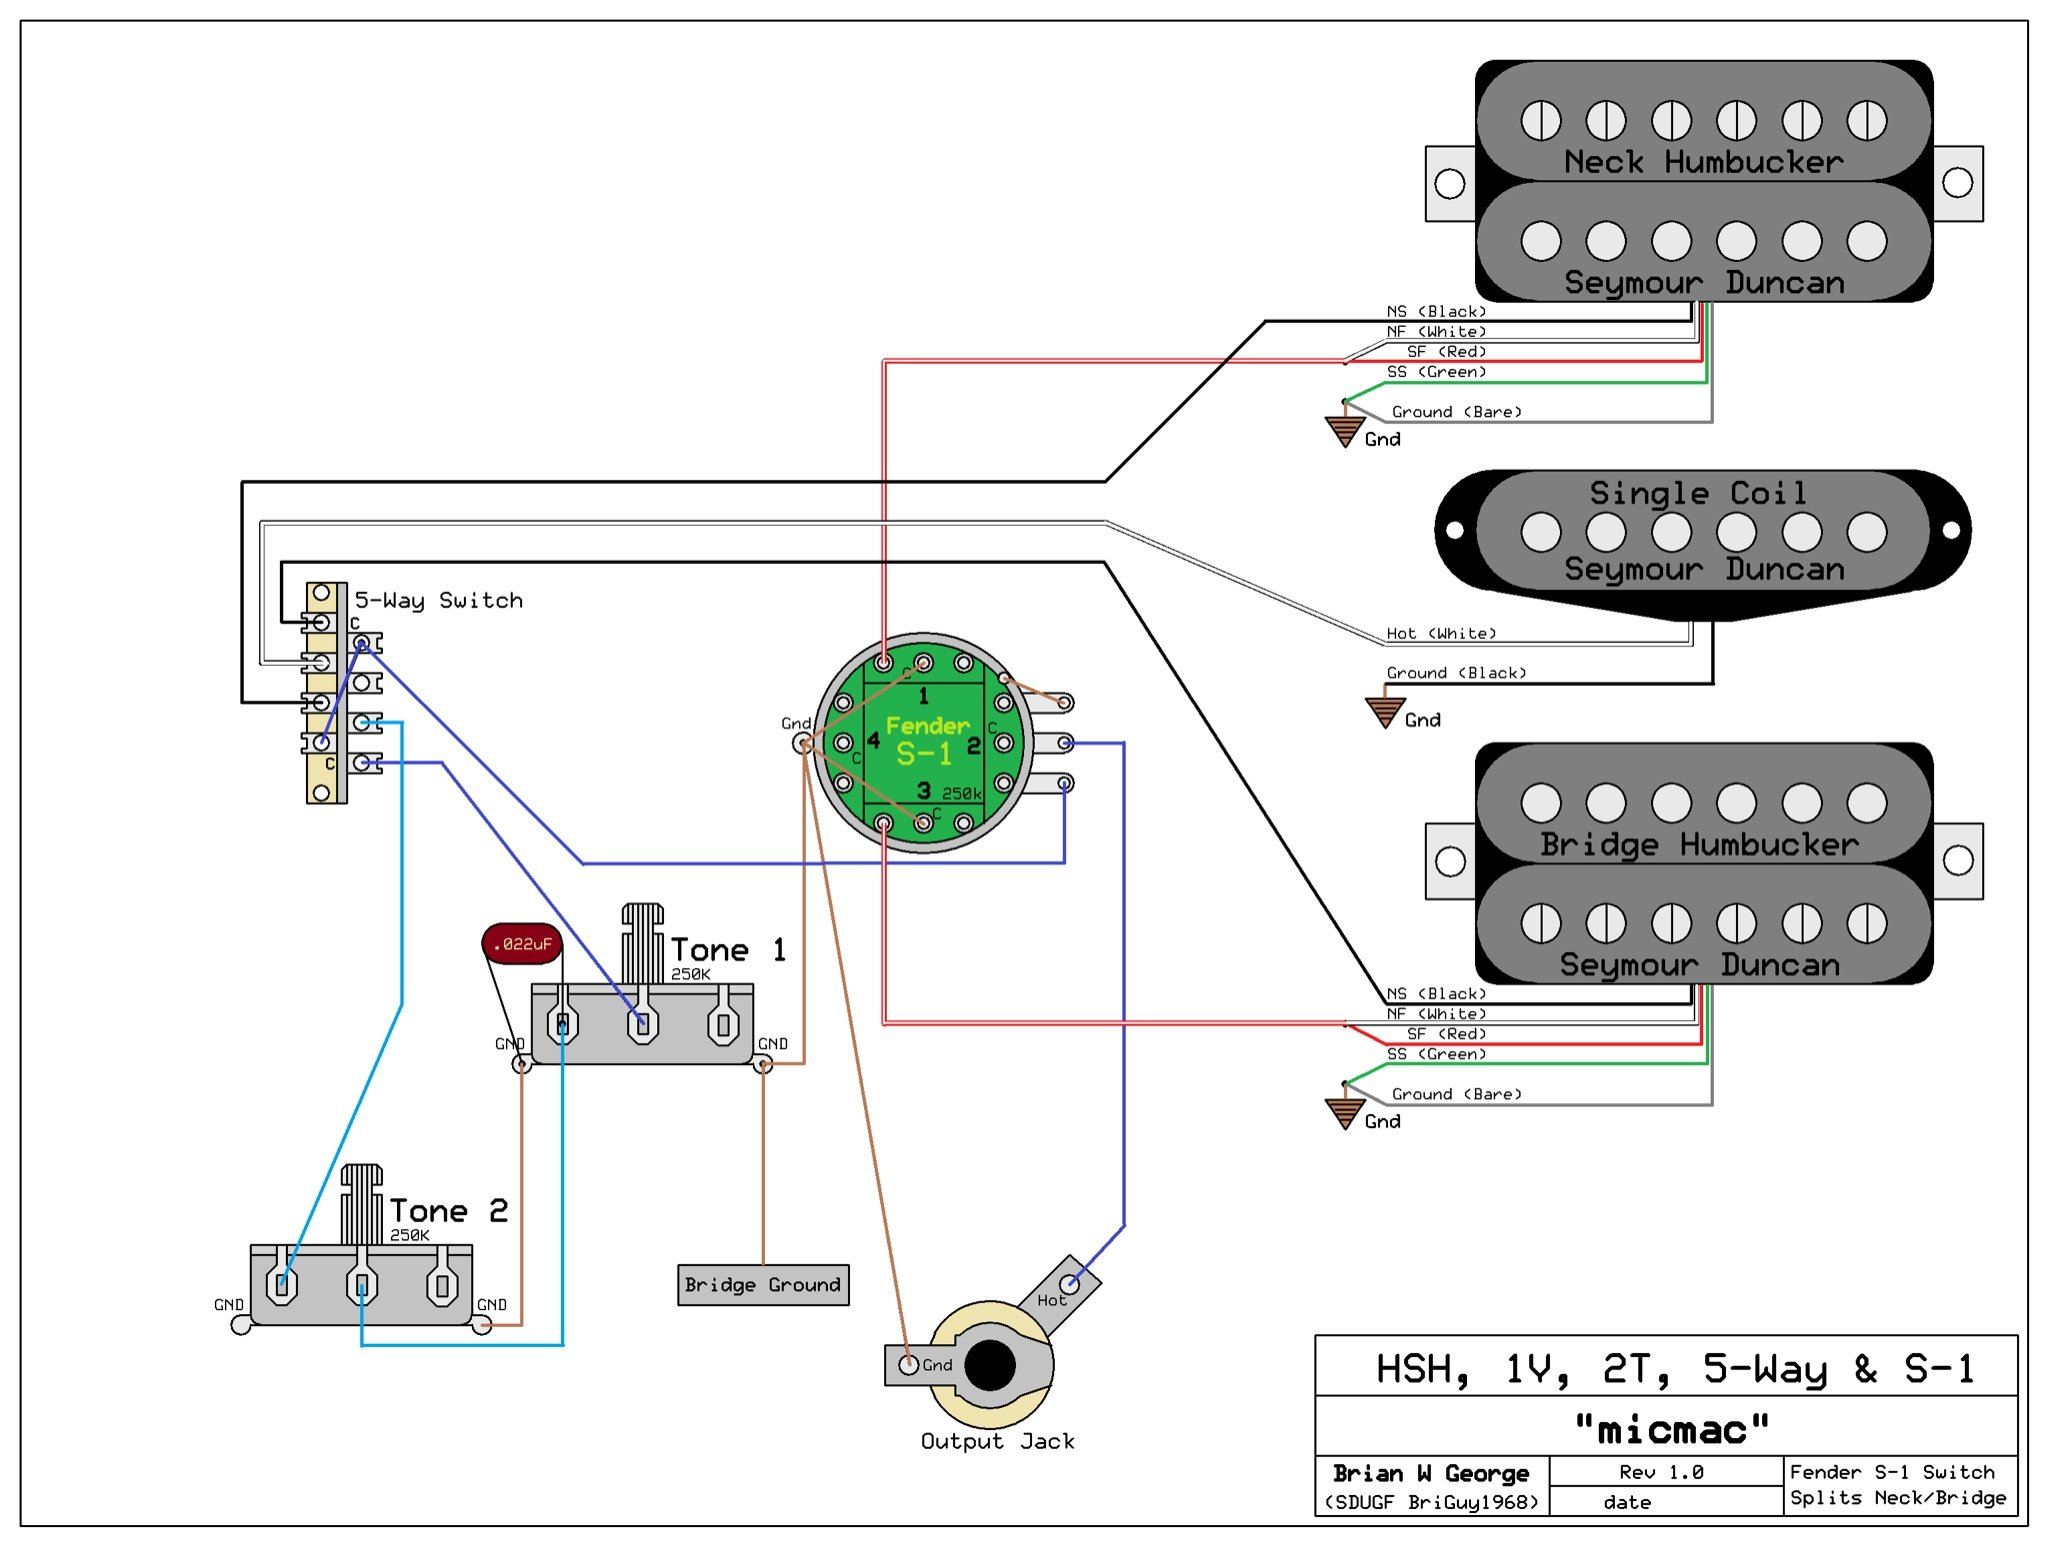 need wiring diagram for an hsh 1 volume 2 tone s 1 switch for volume please let me know if you have any questions and don t forget to come back and tell us how your project turned out not to mention just to hang out